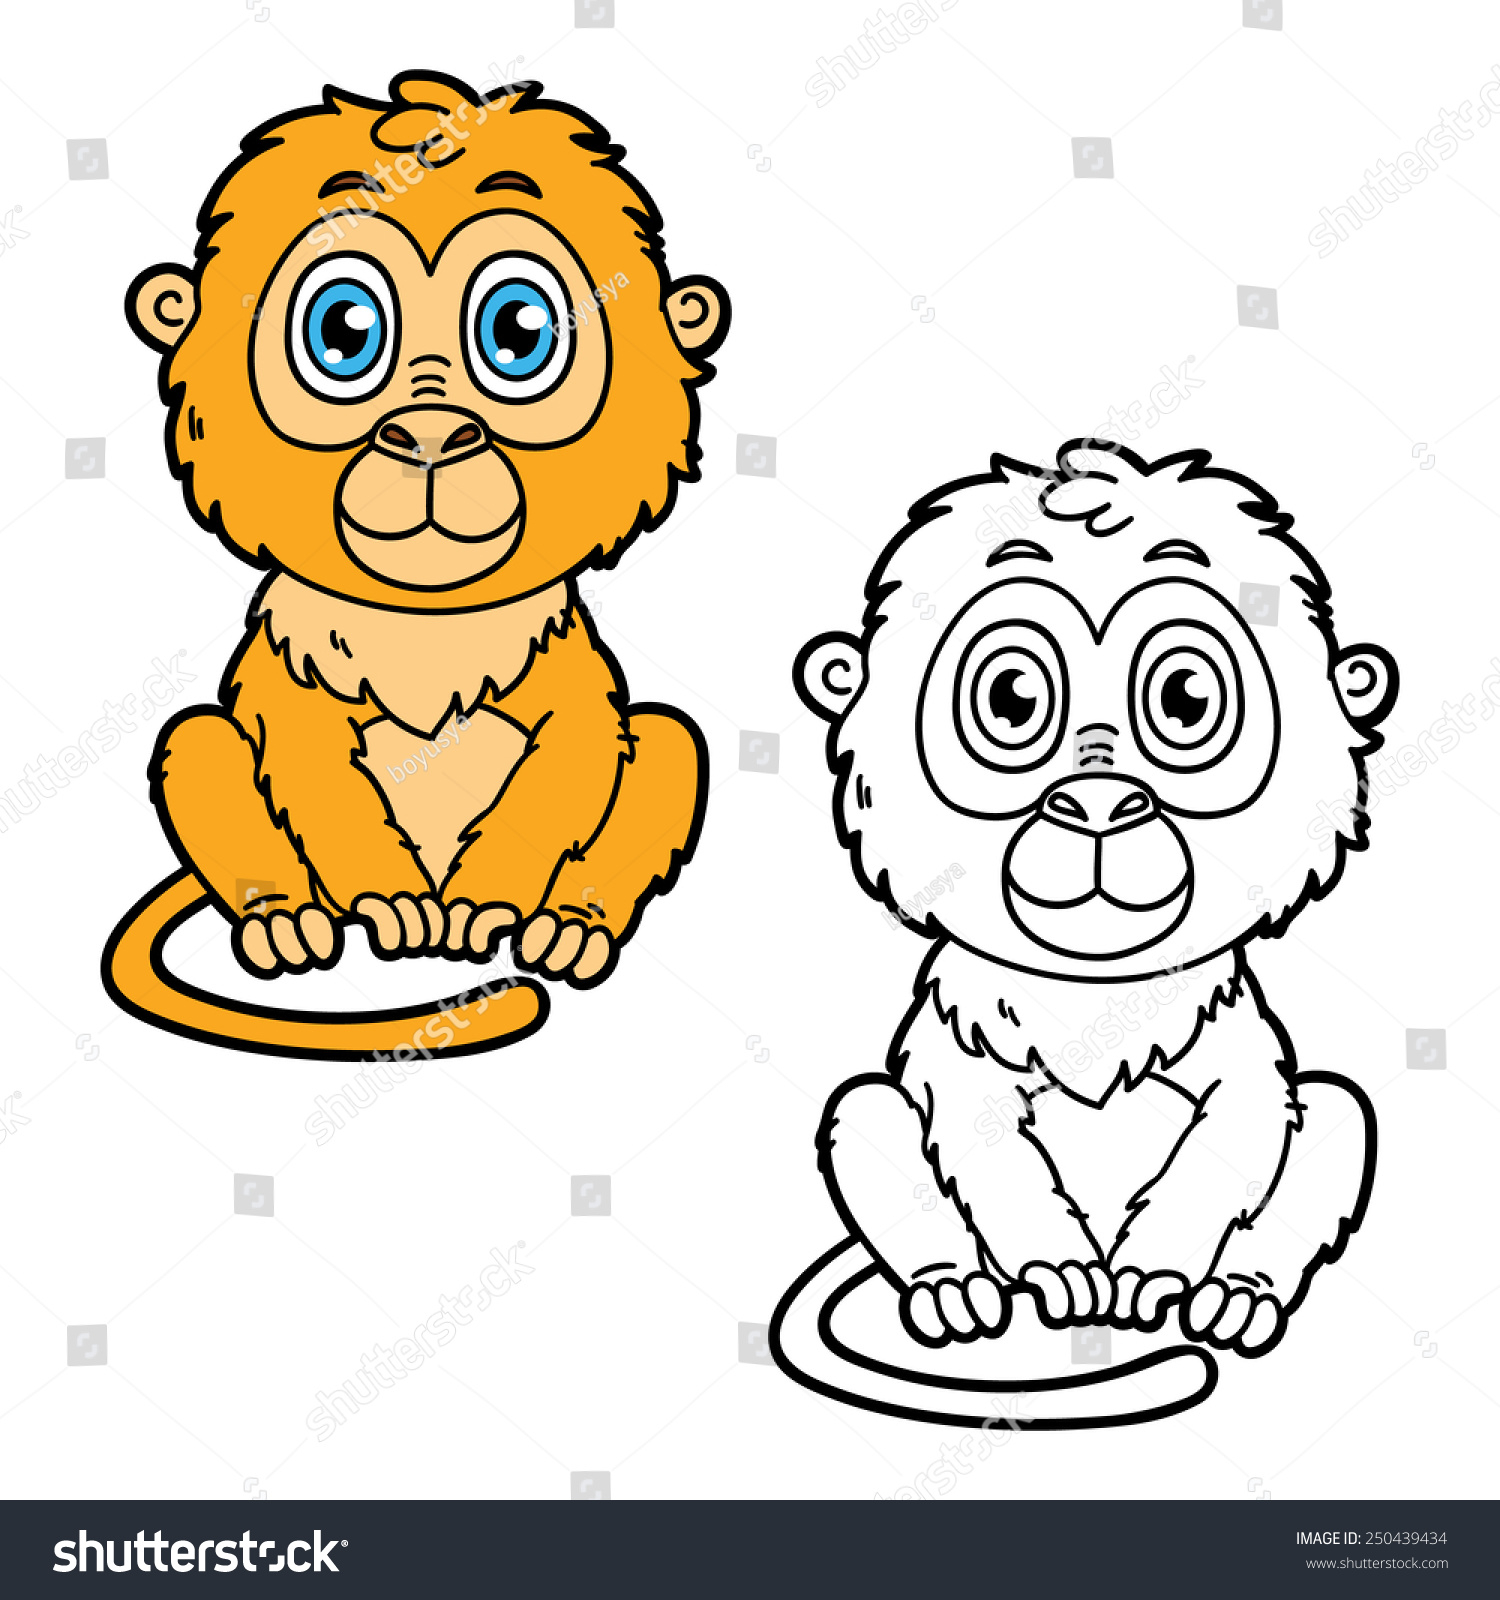 Cartoon Monkey Coloring Pages  Gallery 13a - To print for your project